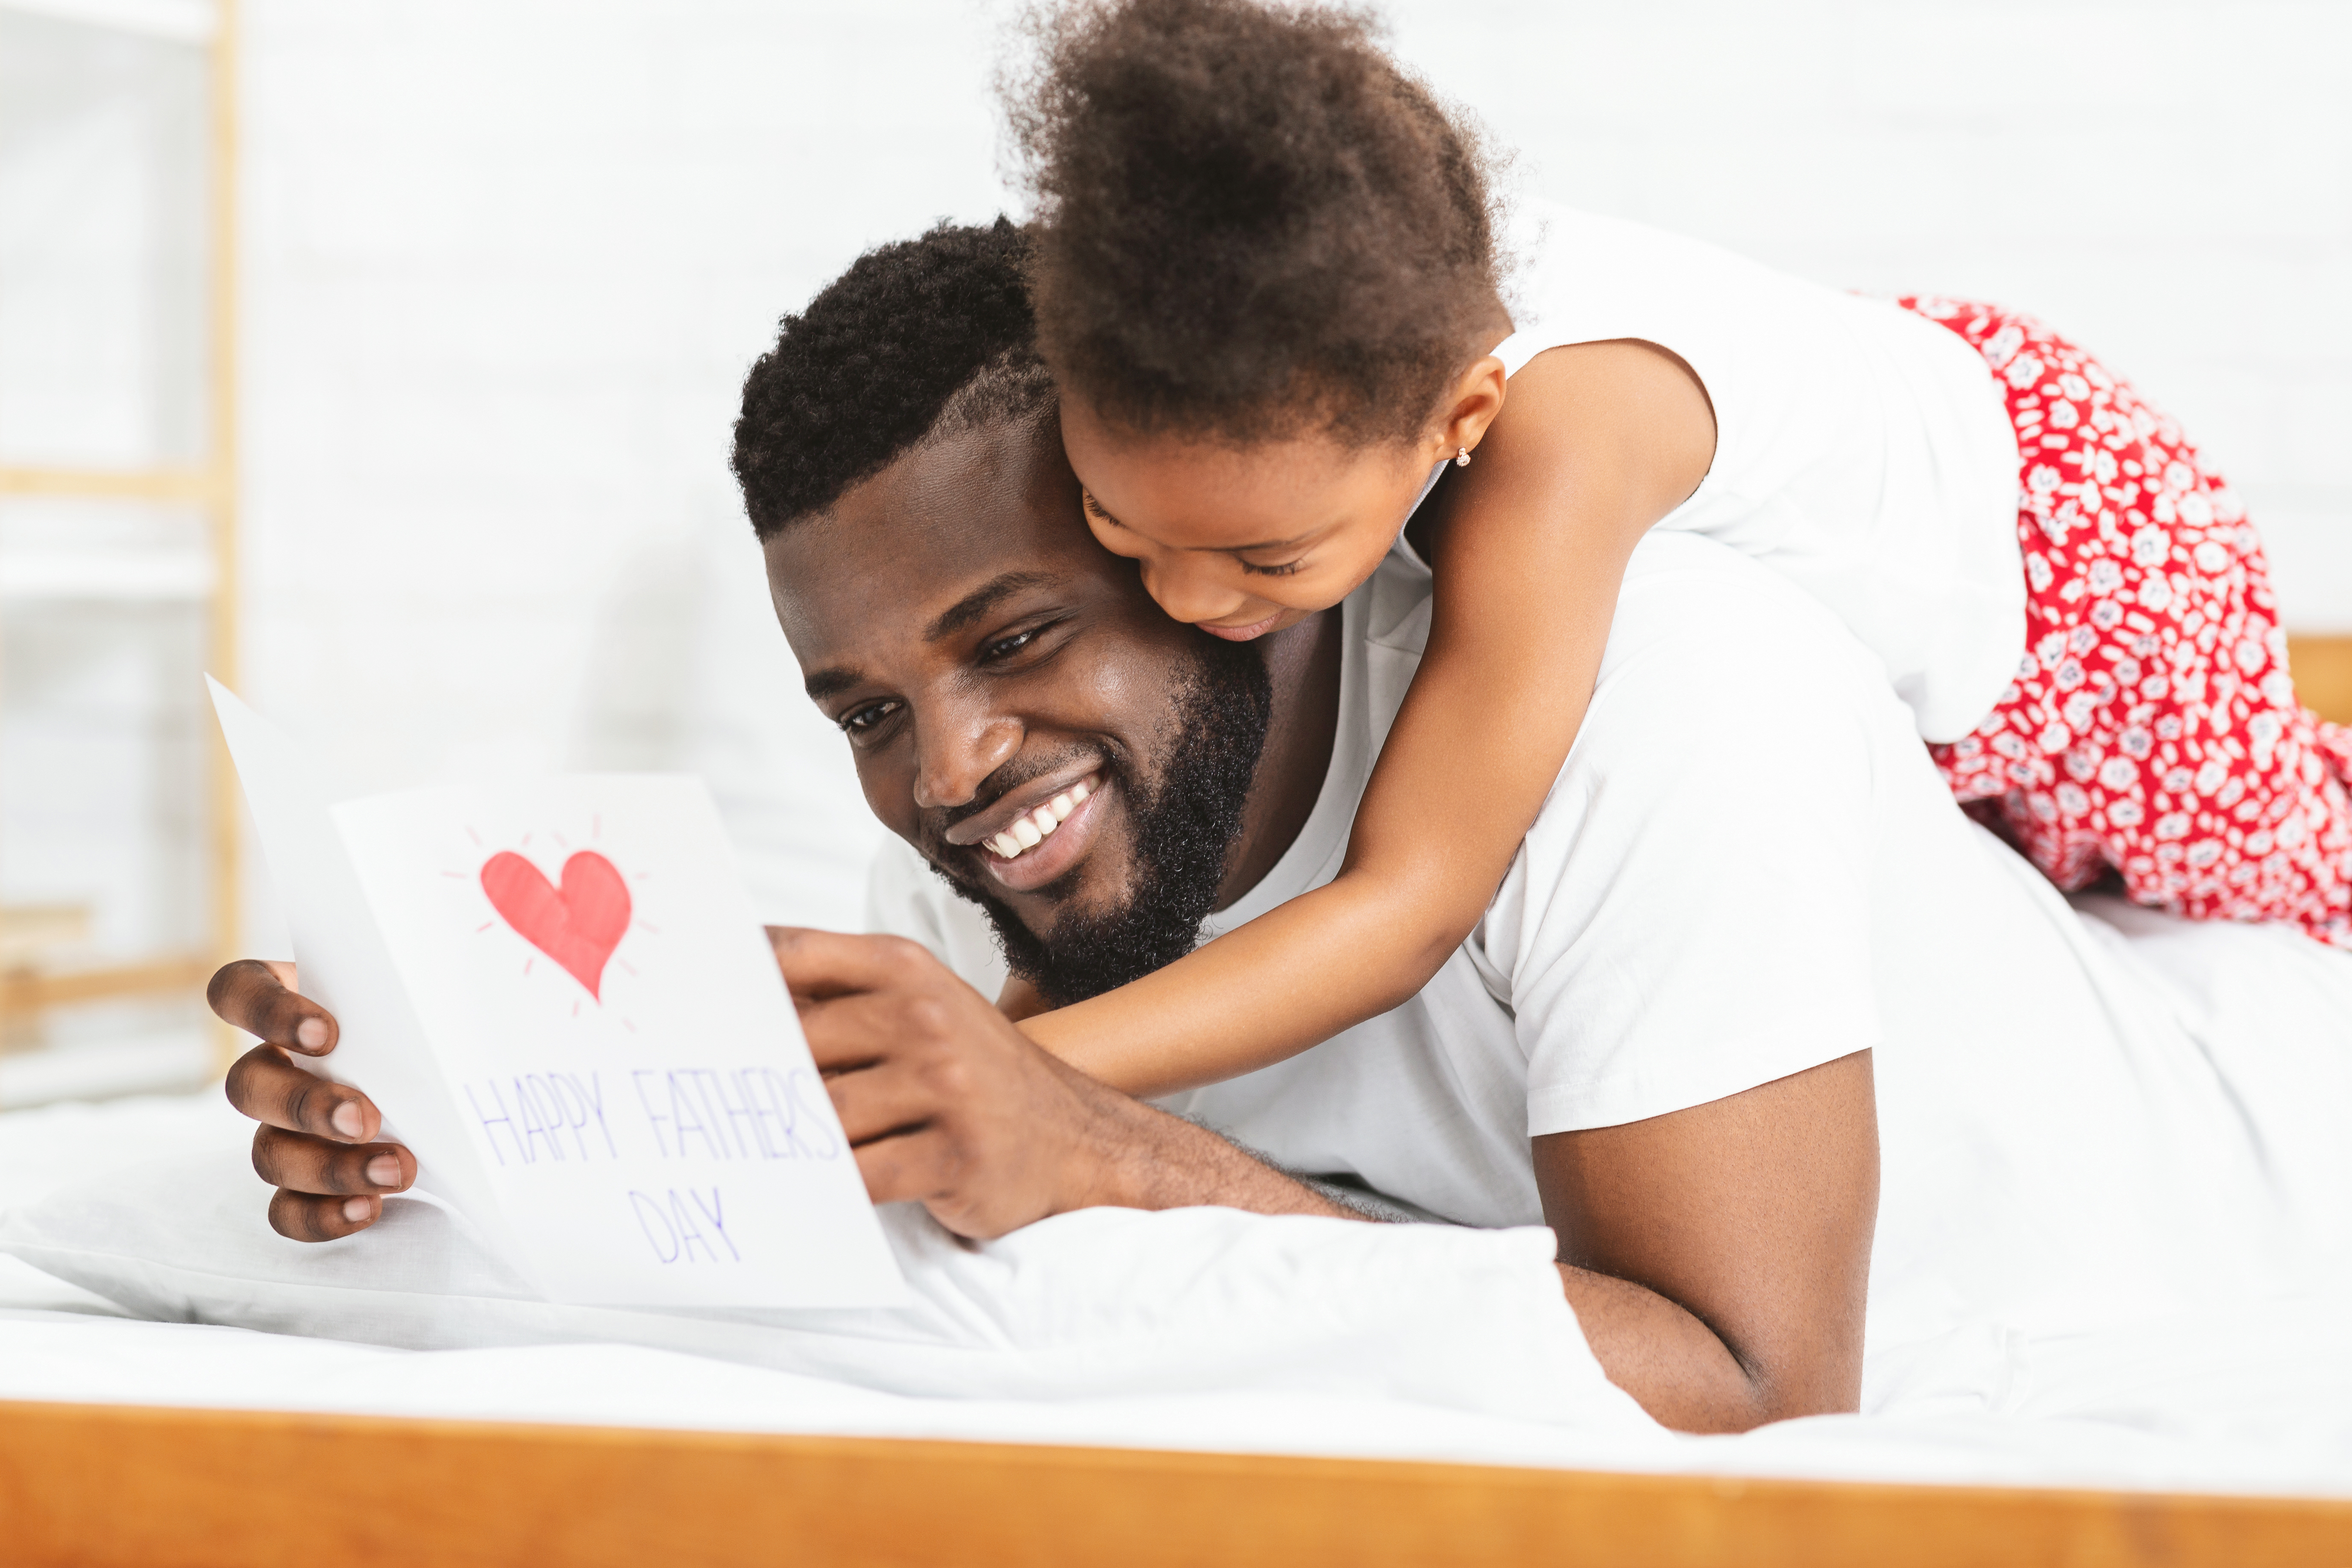 Father's Day Gift Ideas in San Antonio You Can Find at Dominion Ridge